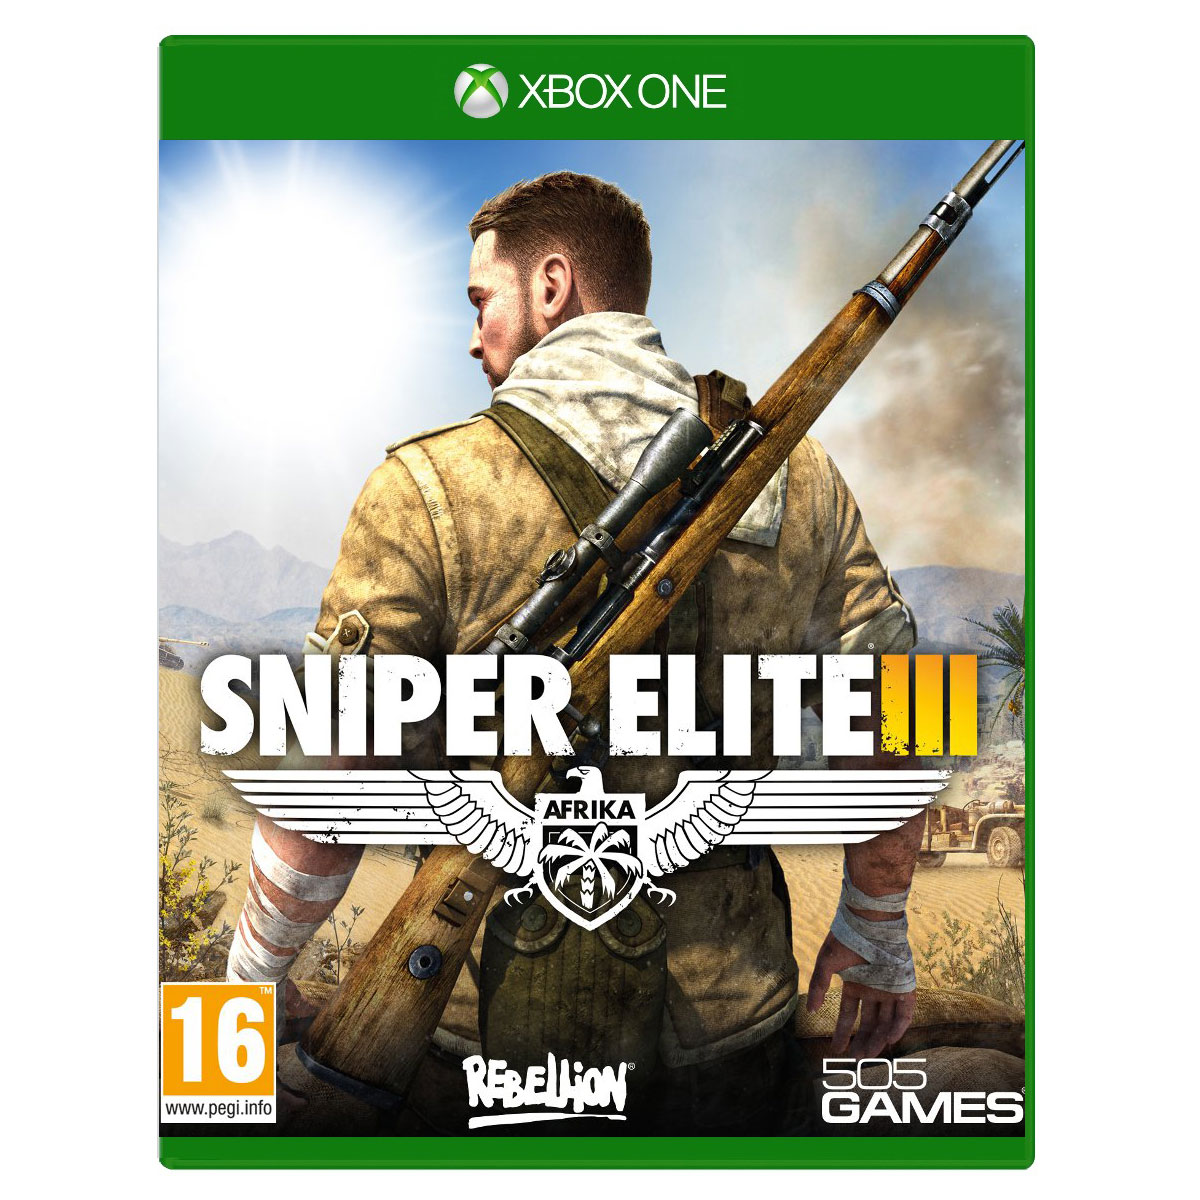 sniper elite iii xbox one dl00423 achat vente jeux xbox one sur. Black Bedroom Furniture Sets. Home Design Ideas